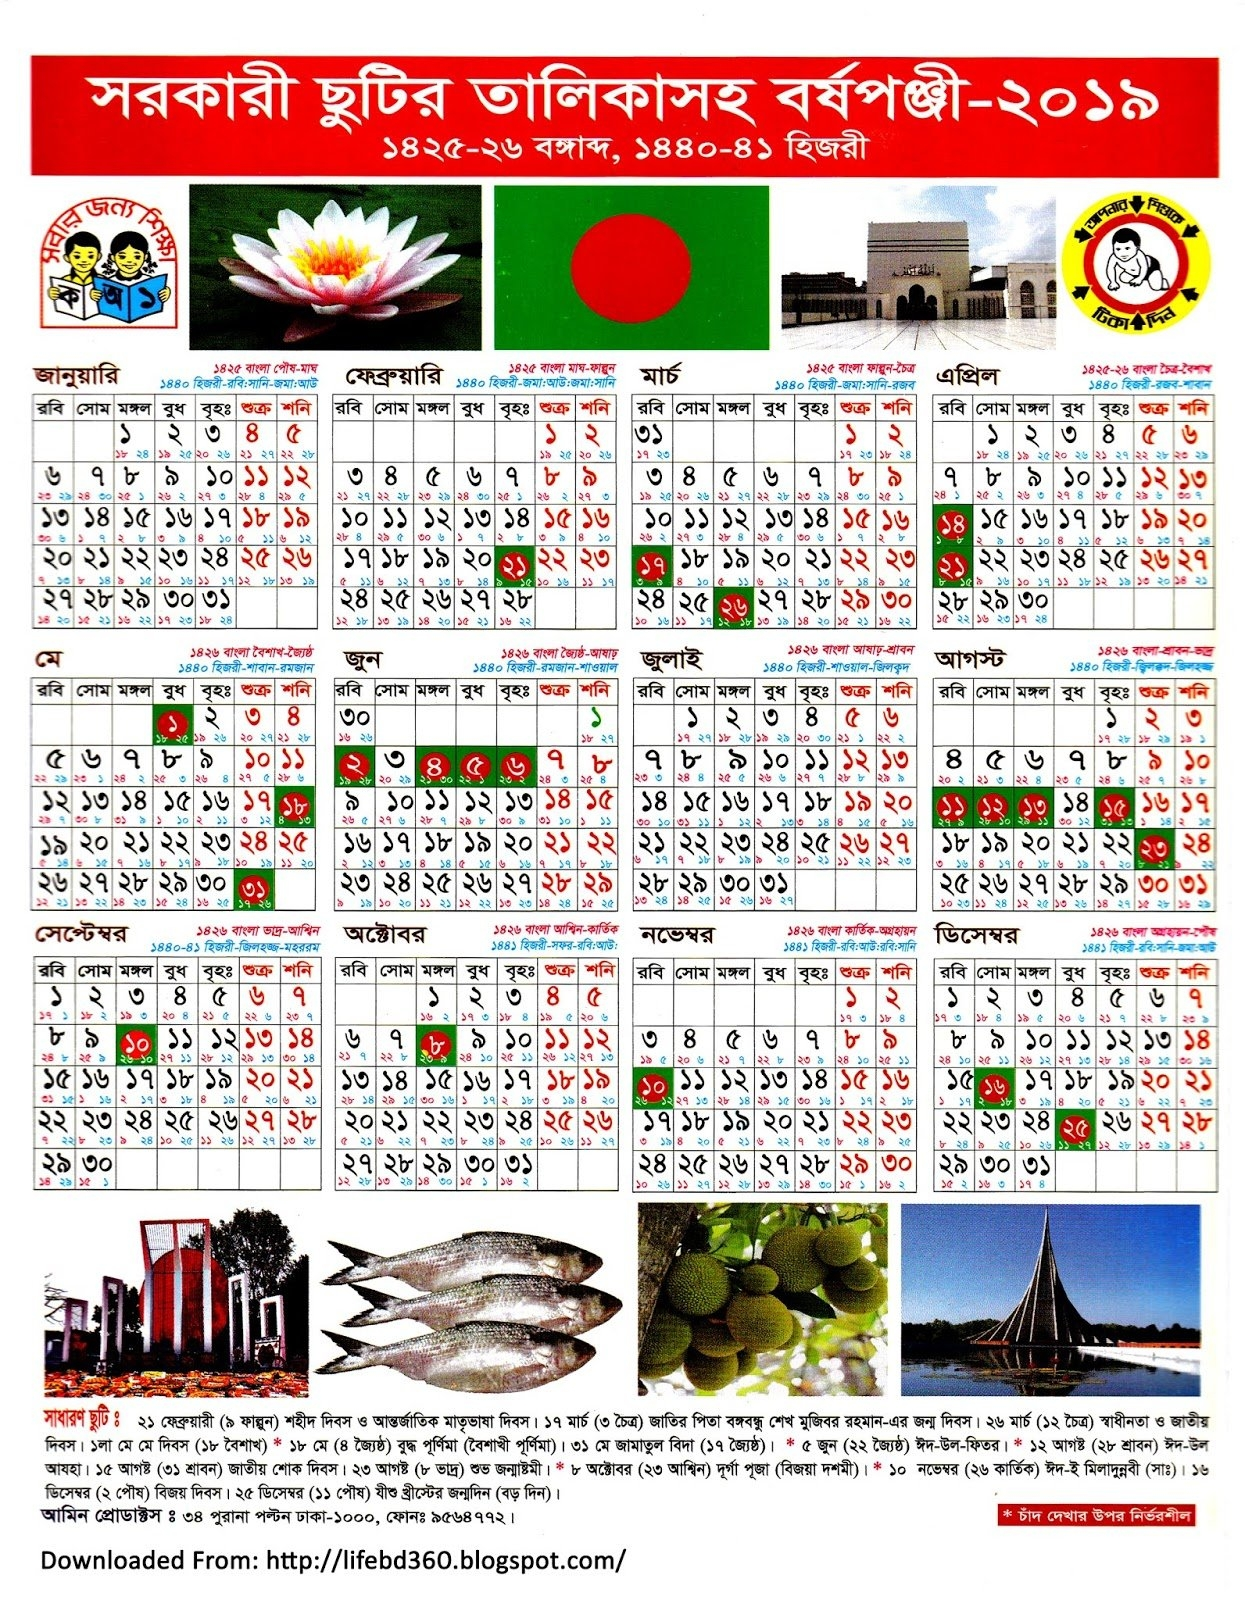 Bangladesh Government Holiday Calendar 2019 | Life In Bangladesh Calendar Of 2019 With Holidays In Bangladesh